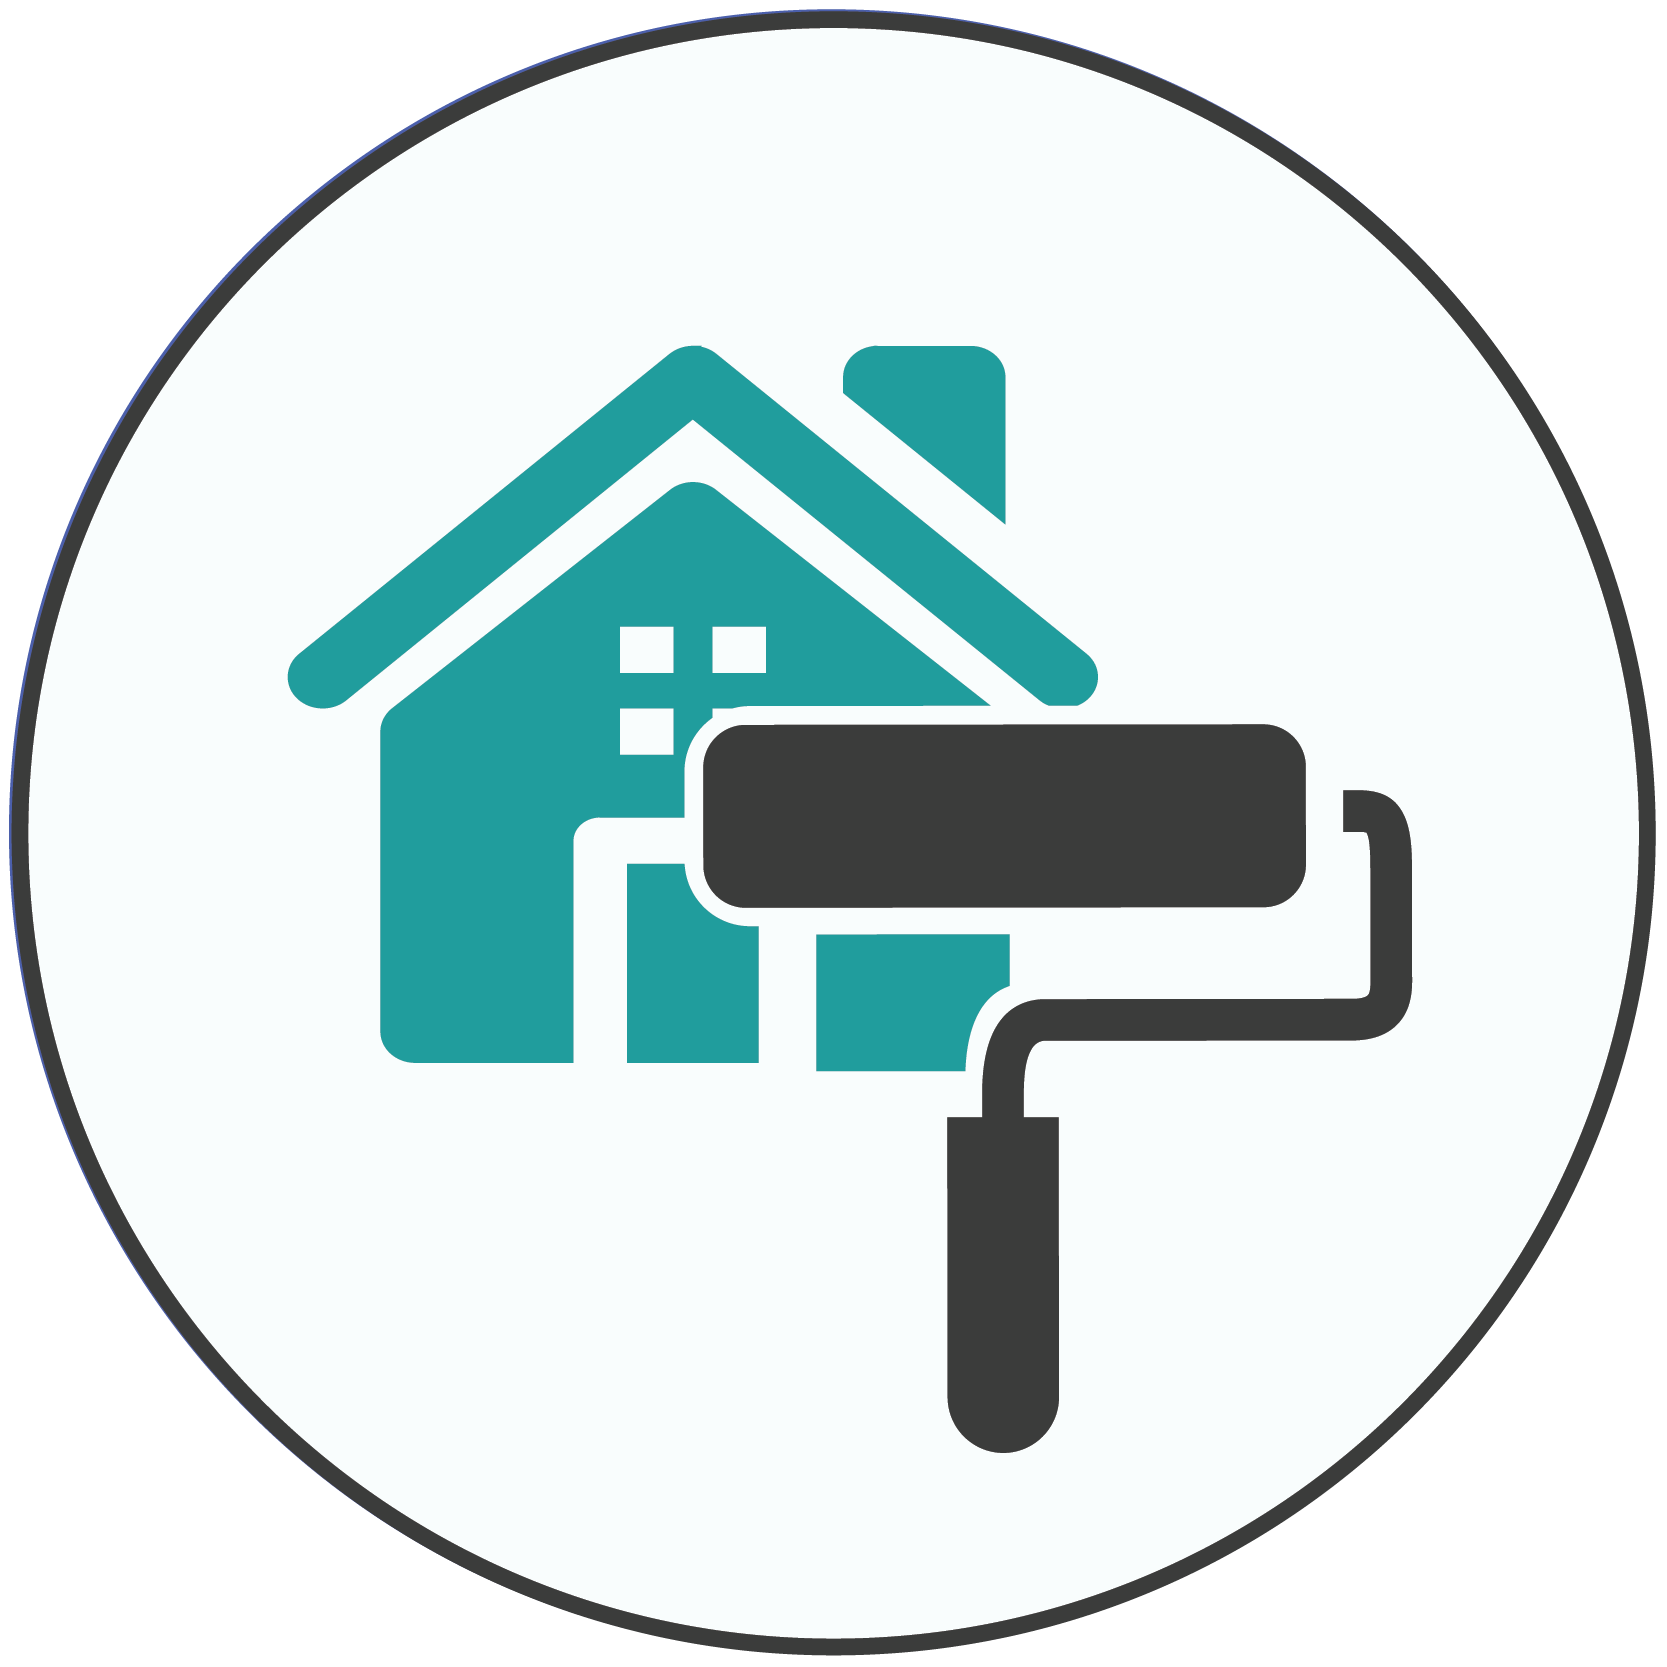 Teal icon of a house with a gray paint roller frame in front of it